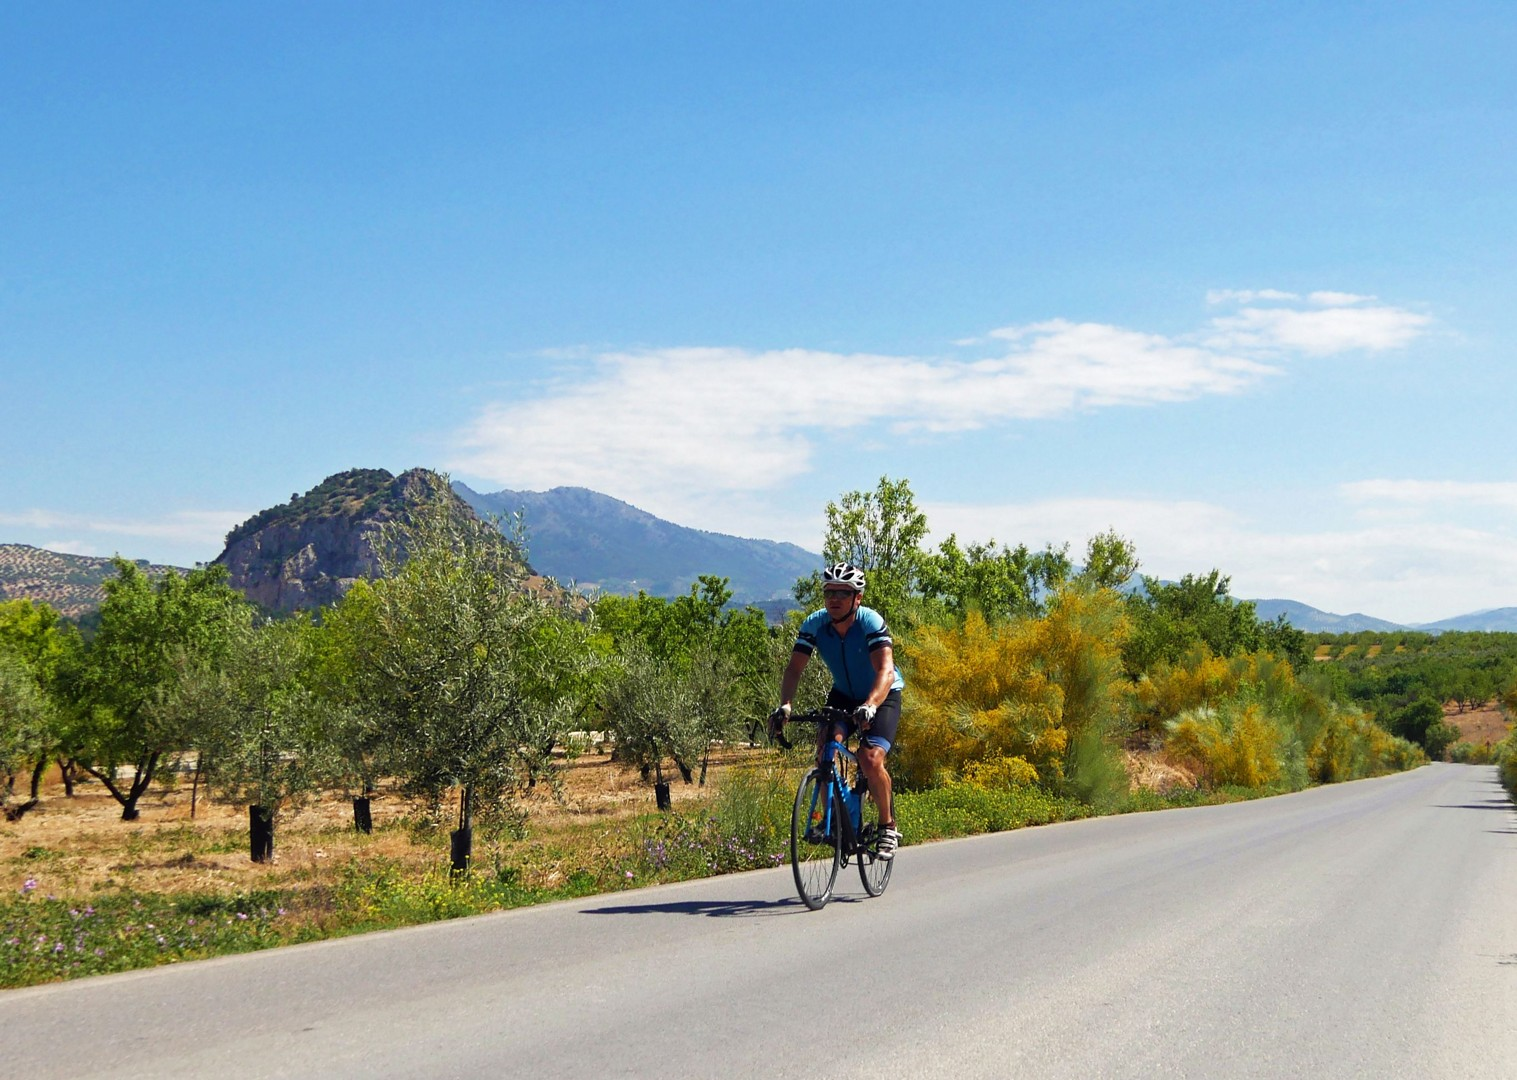 olive-groves-road-cycling-holiday-spain.jpg - Spain - Basque Country to Andalucia - North to South - 21 Day - Guided Road Cycling Holiday - Road Cycling